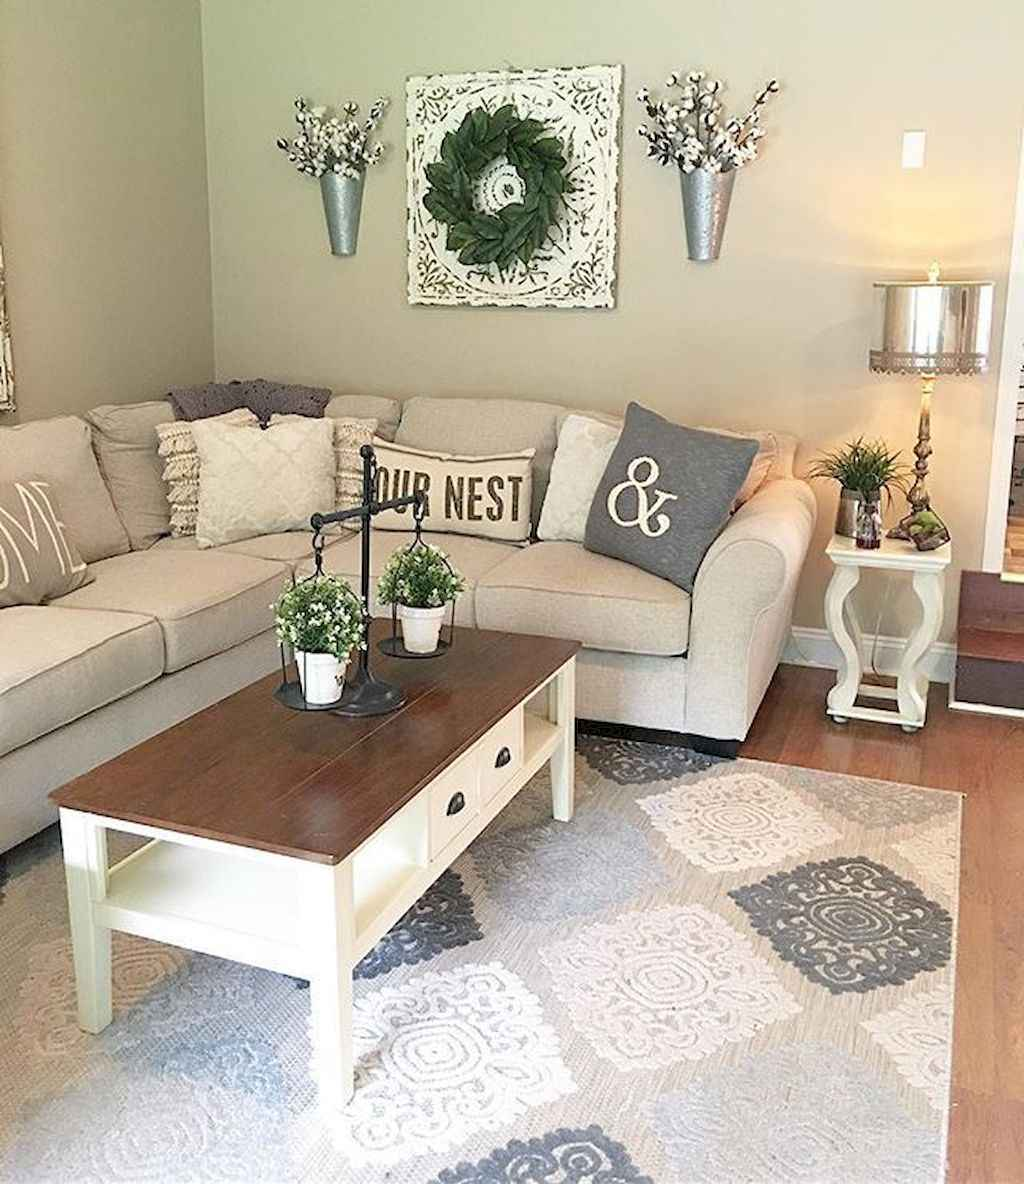 Clever college apartment decorating ideas on a budget (63)